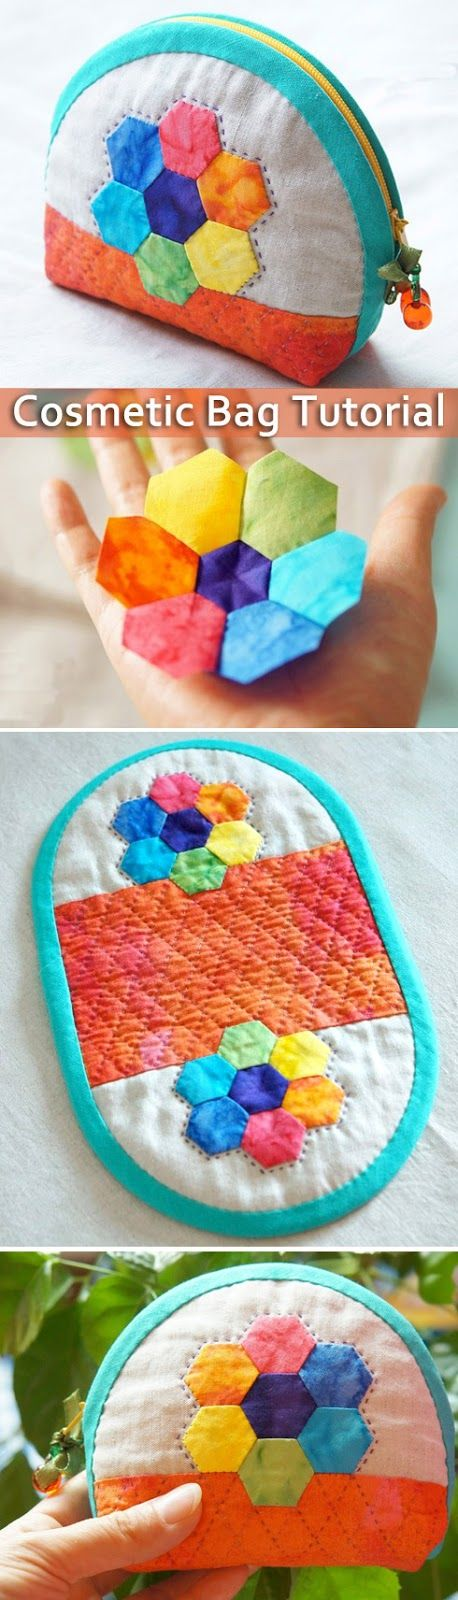 Makeup Bags Tutorials, Diy Quilts, Purses Tutorials. Patchwork & Quilts. ?????????? ??? ???????  http://www.handmadiya.com/2015/09/zipper-cosmetic-bag-tutorial-patchwork.html (Diy Maquillaje)